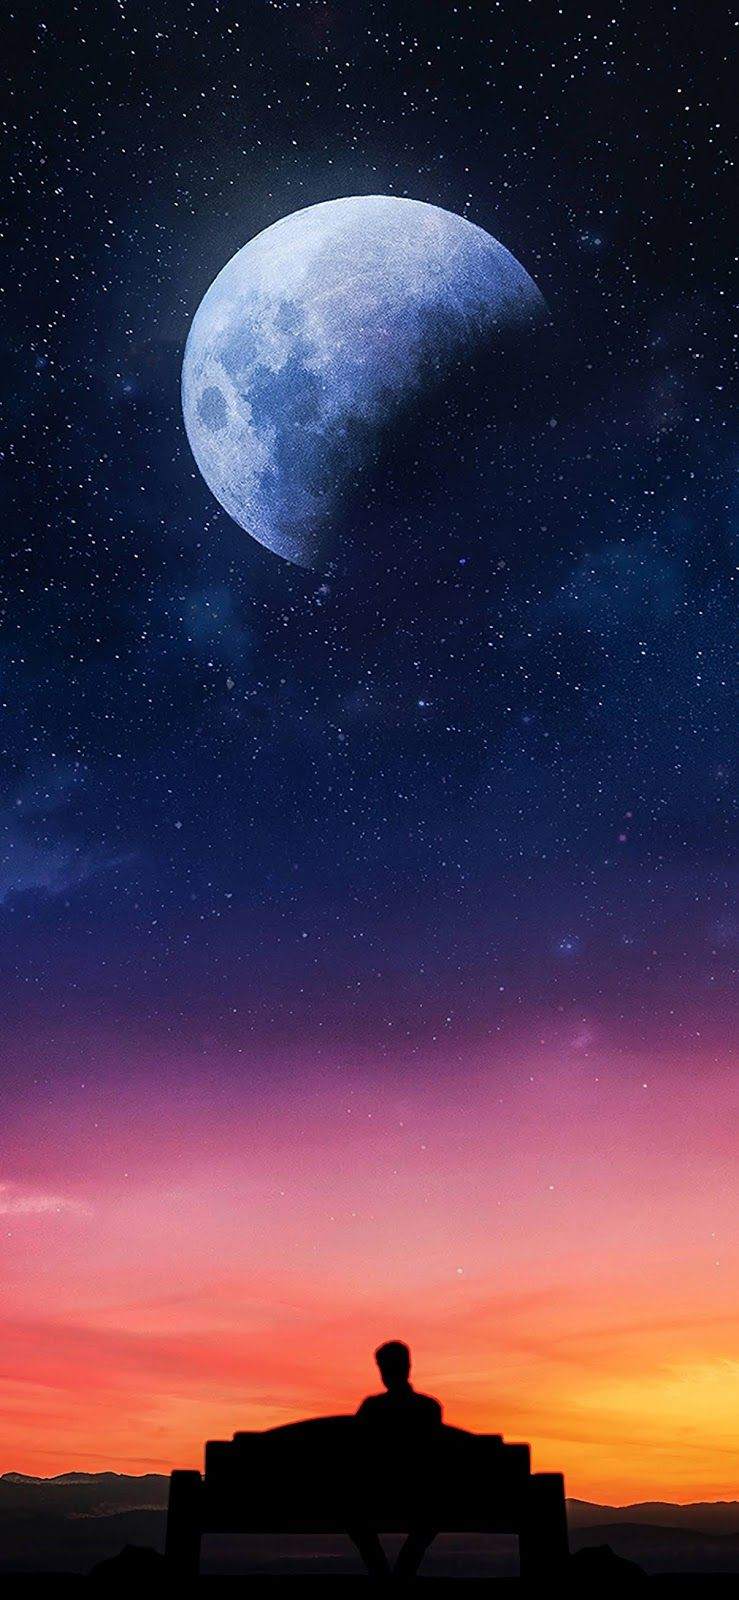 Starry Sky Iphone Xs Max Background Iphone Wallpaper Sky Night Sky Photography Night Sky Photography Stars